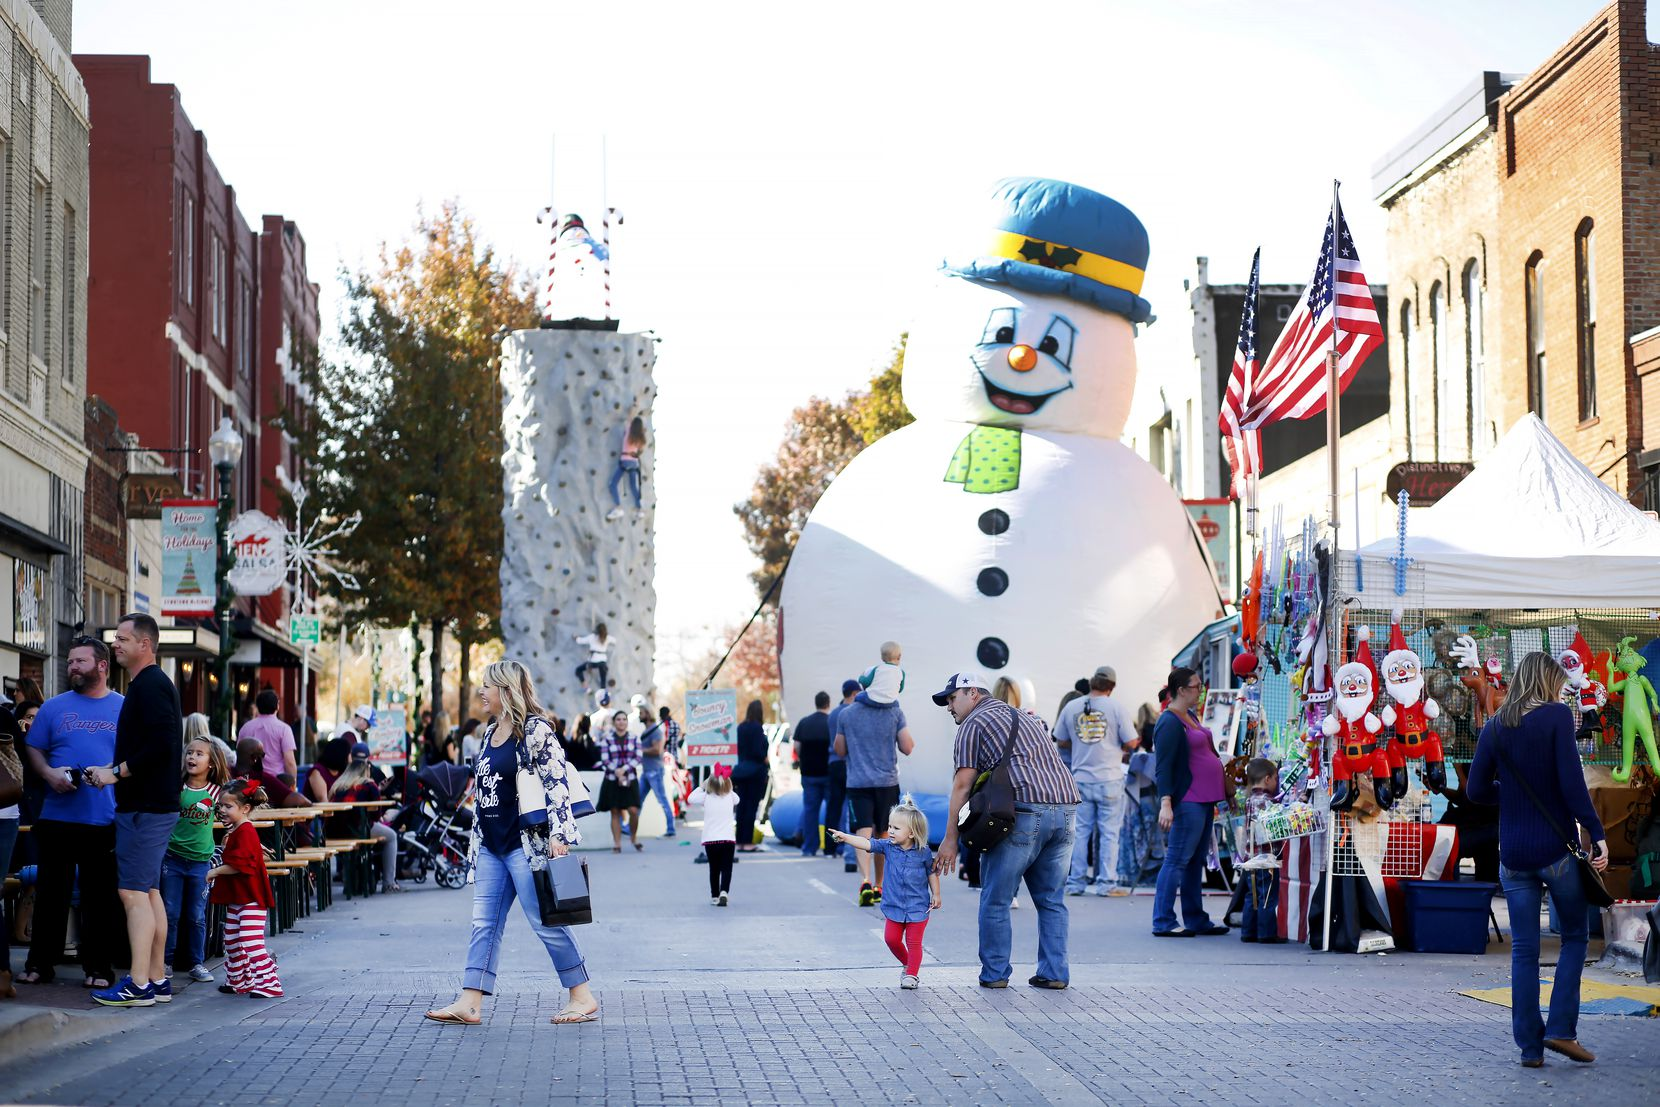 McKinney's annual Home for the Holidays celebration will run Nov. 29-Dec. 1 around the downtown square.